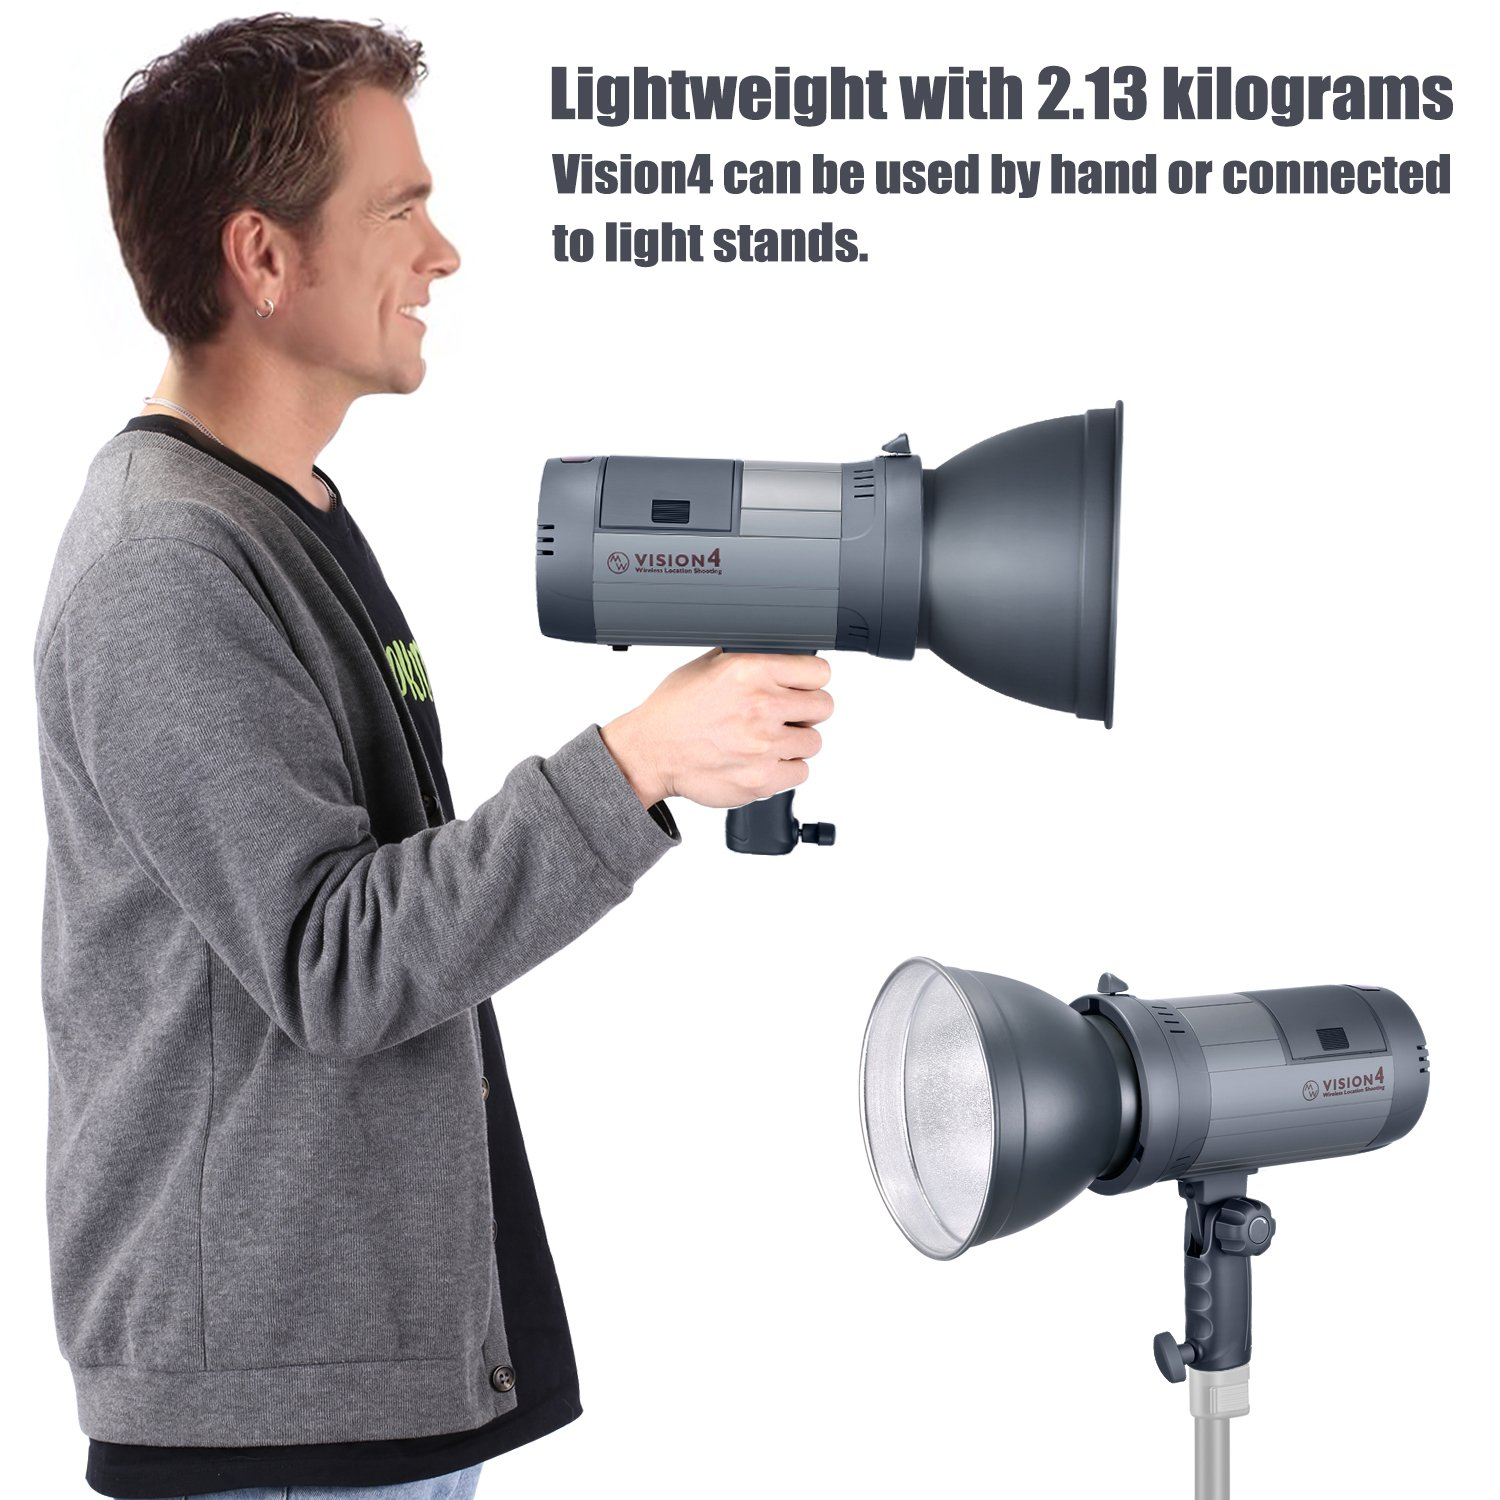 Trigger Included 700 Full Power Flashes Neewer 300W Li-ion Battery Powered German Engineered Outdoor Studio Flash Strobe with 2.4G System Bowens Mount 4.7 Pounds,Vision 4 for Location Shooting